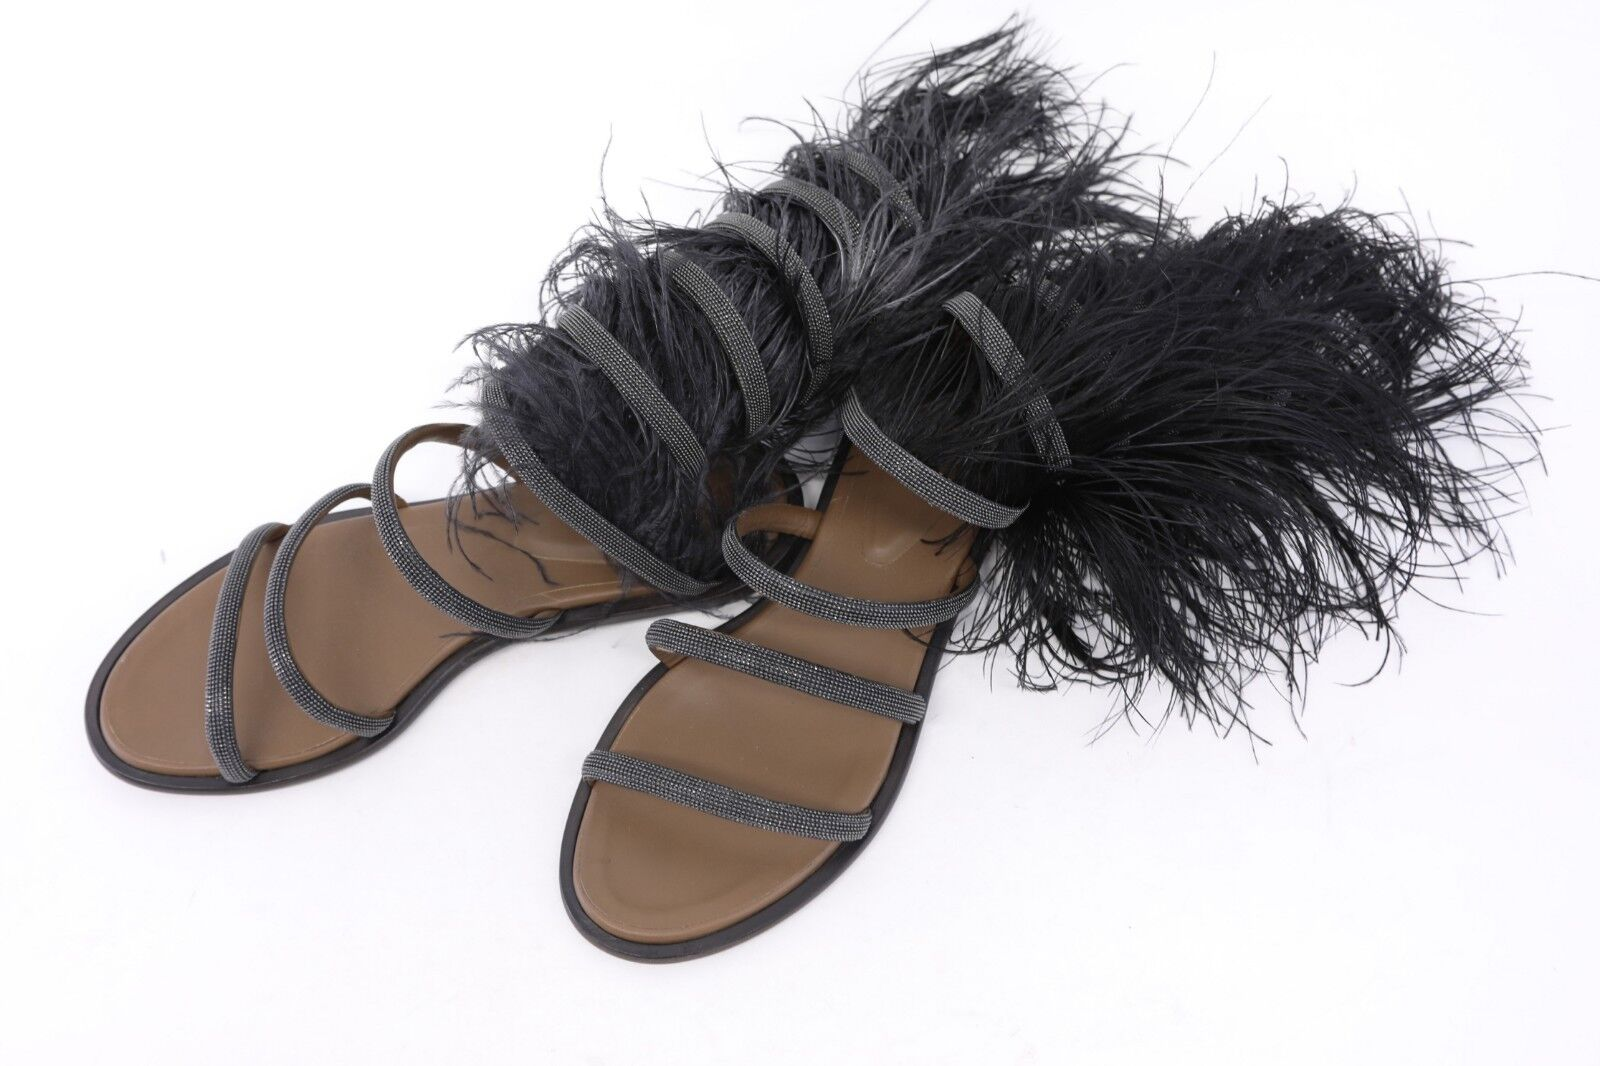 NWOB 3495 Brunello Cucinelli Leather Leather Leather Beaded+Ostrich Feather Gladiators40 10 A186 818a1b